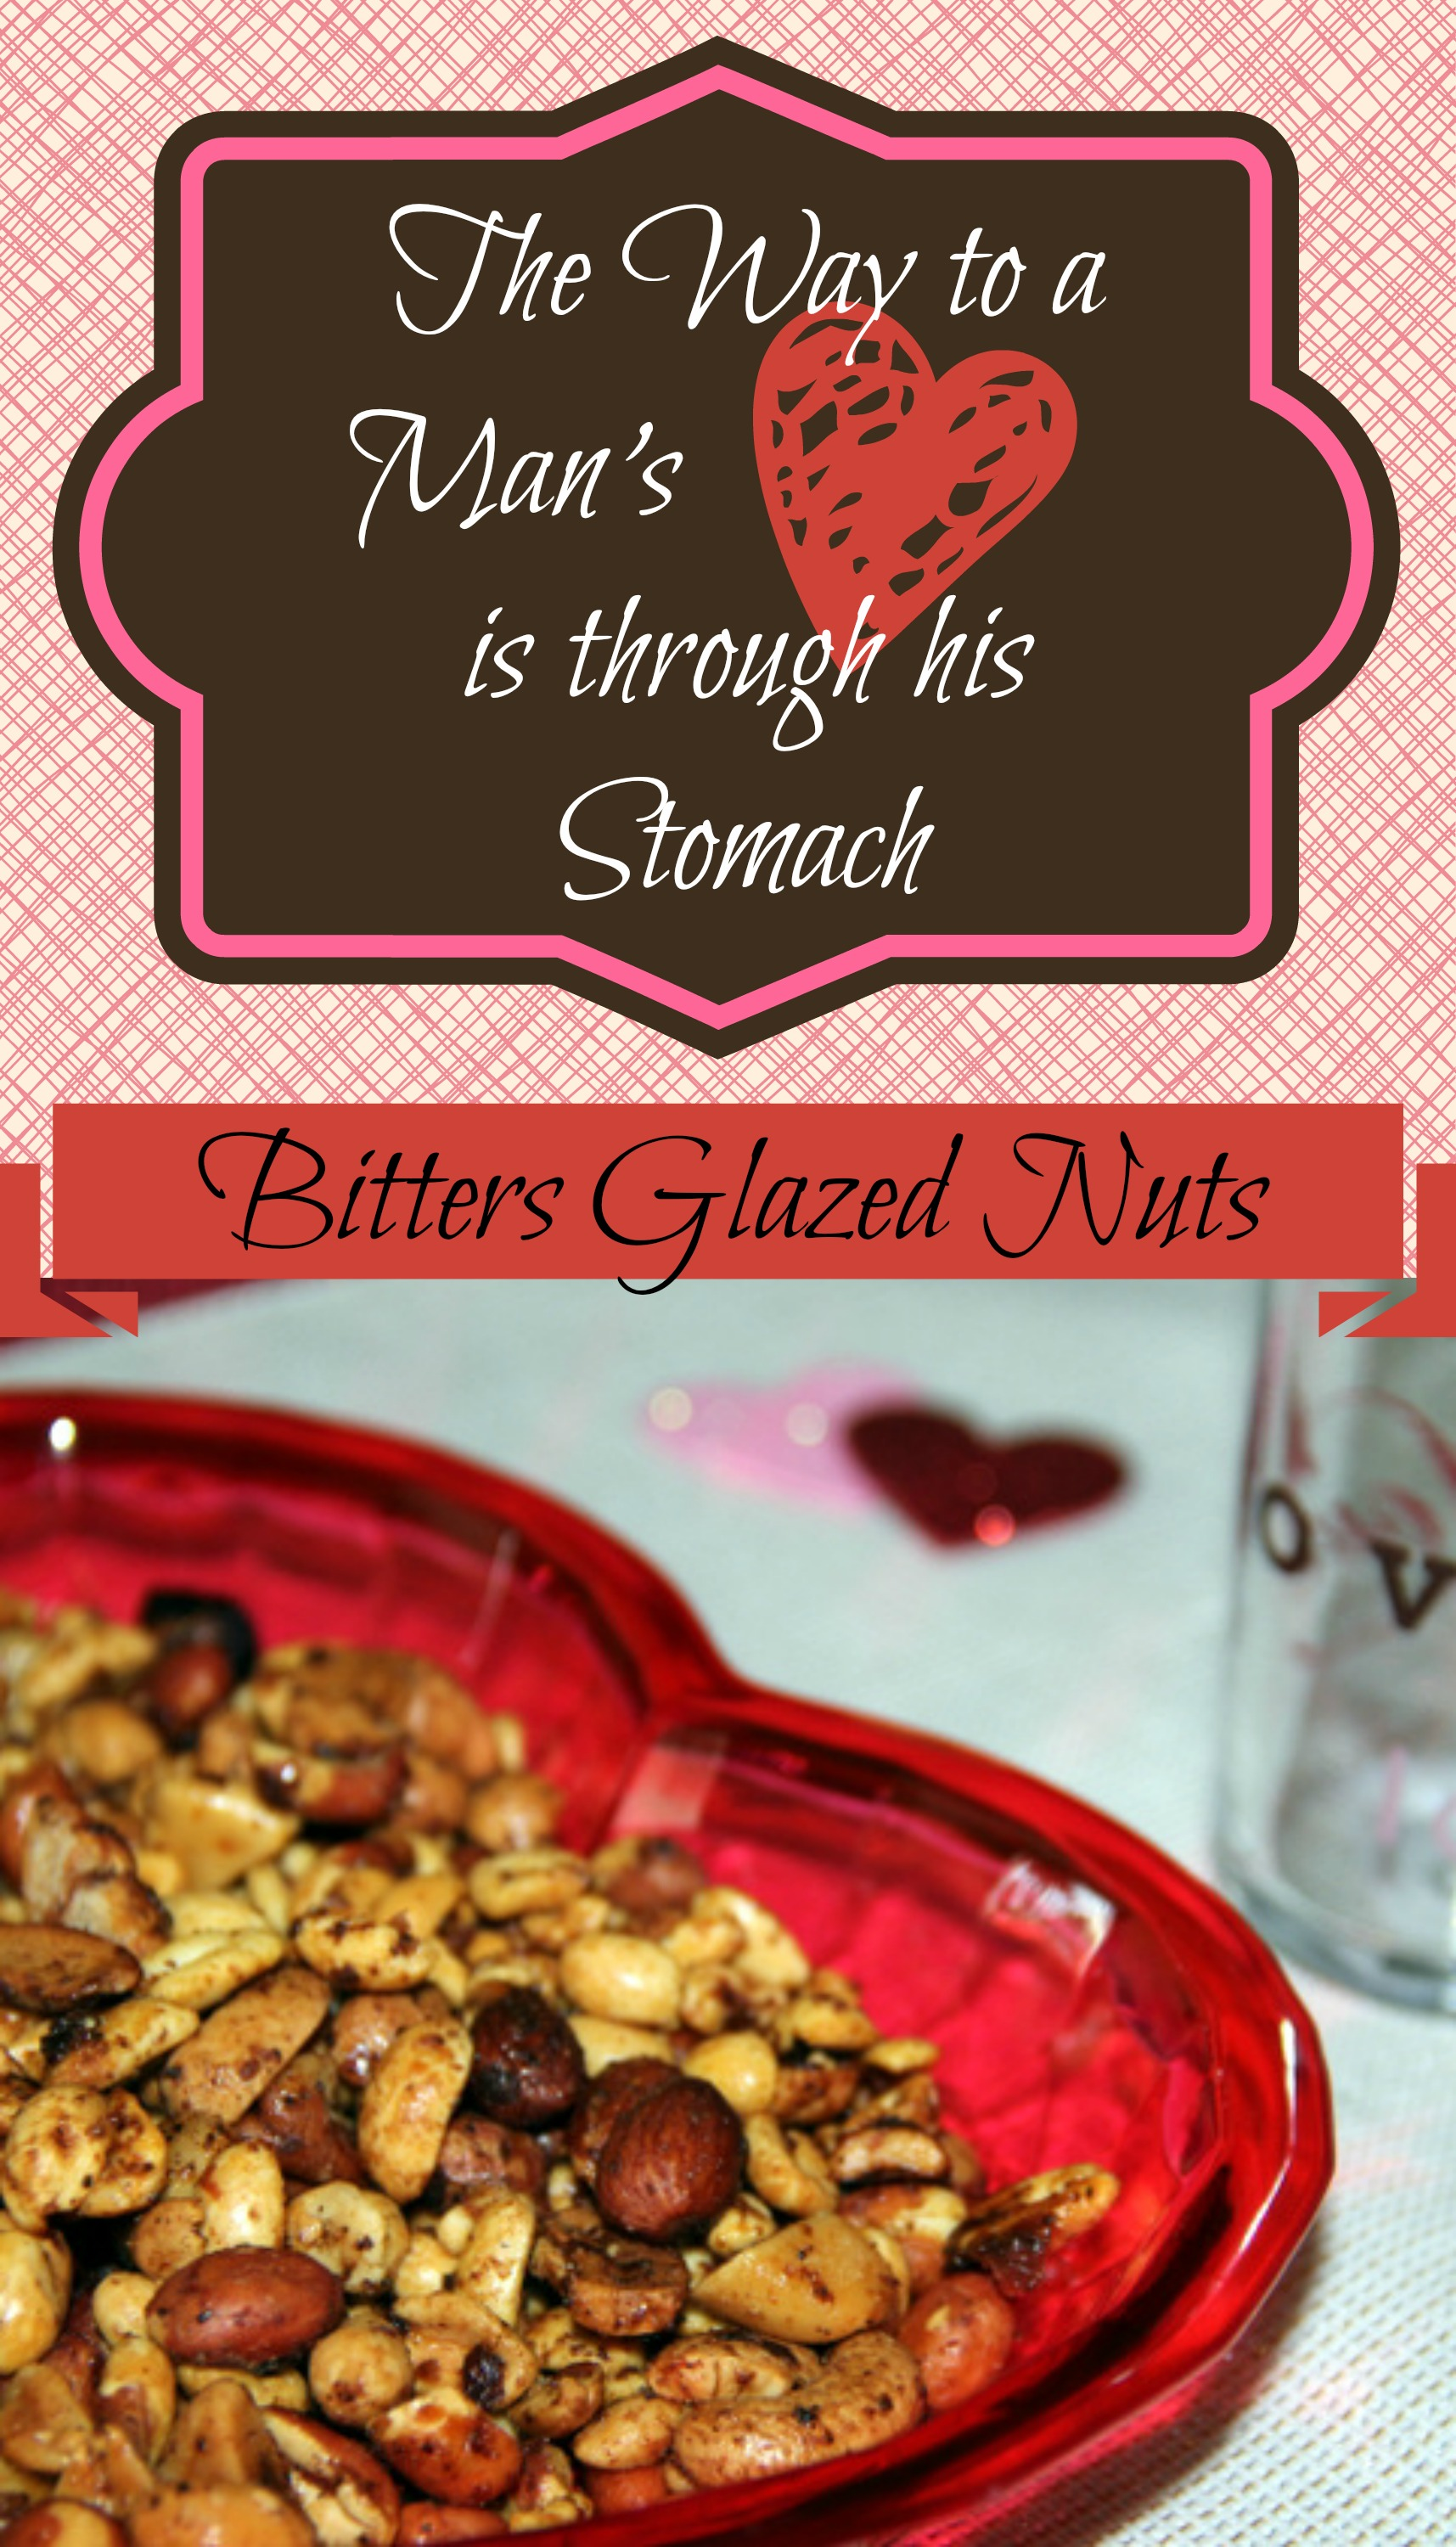 Bitters Glazed Nuts Recipe